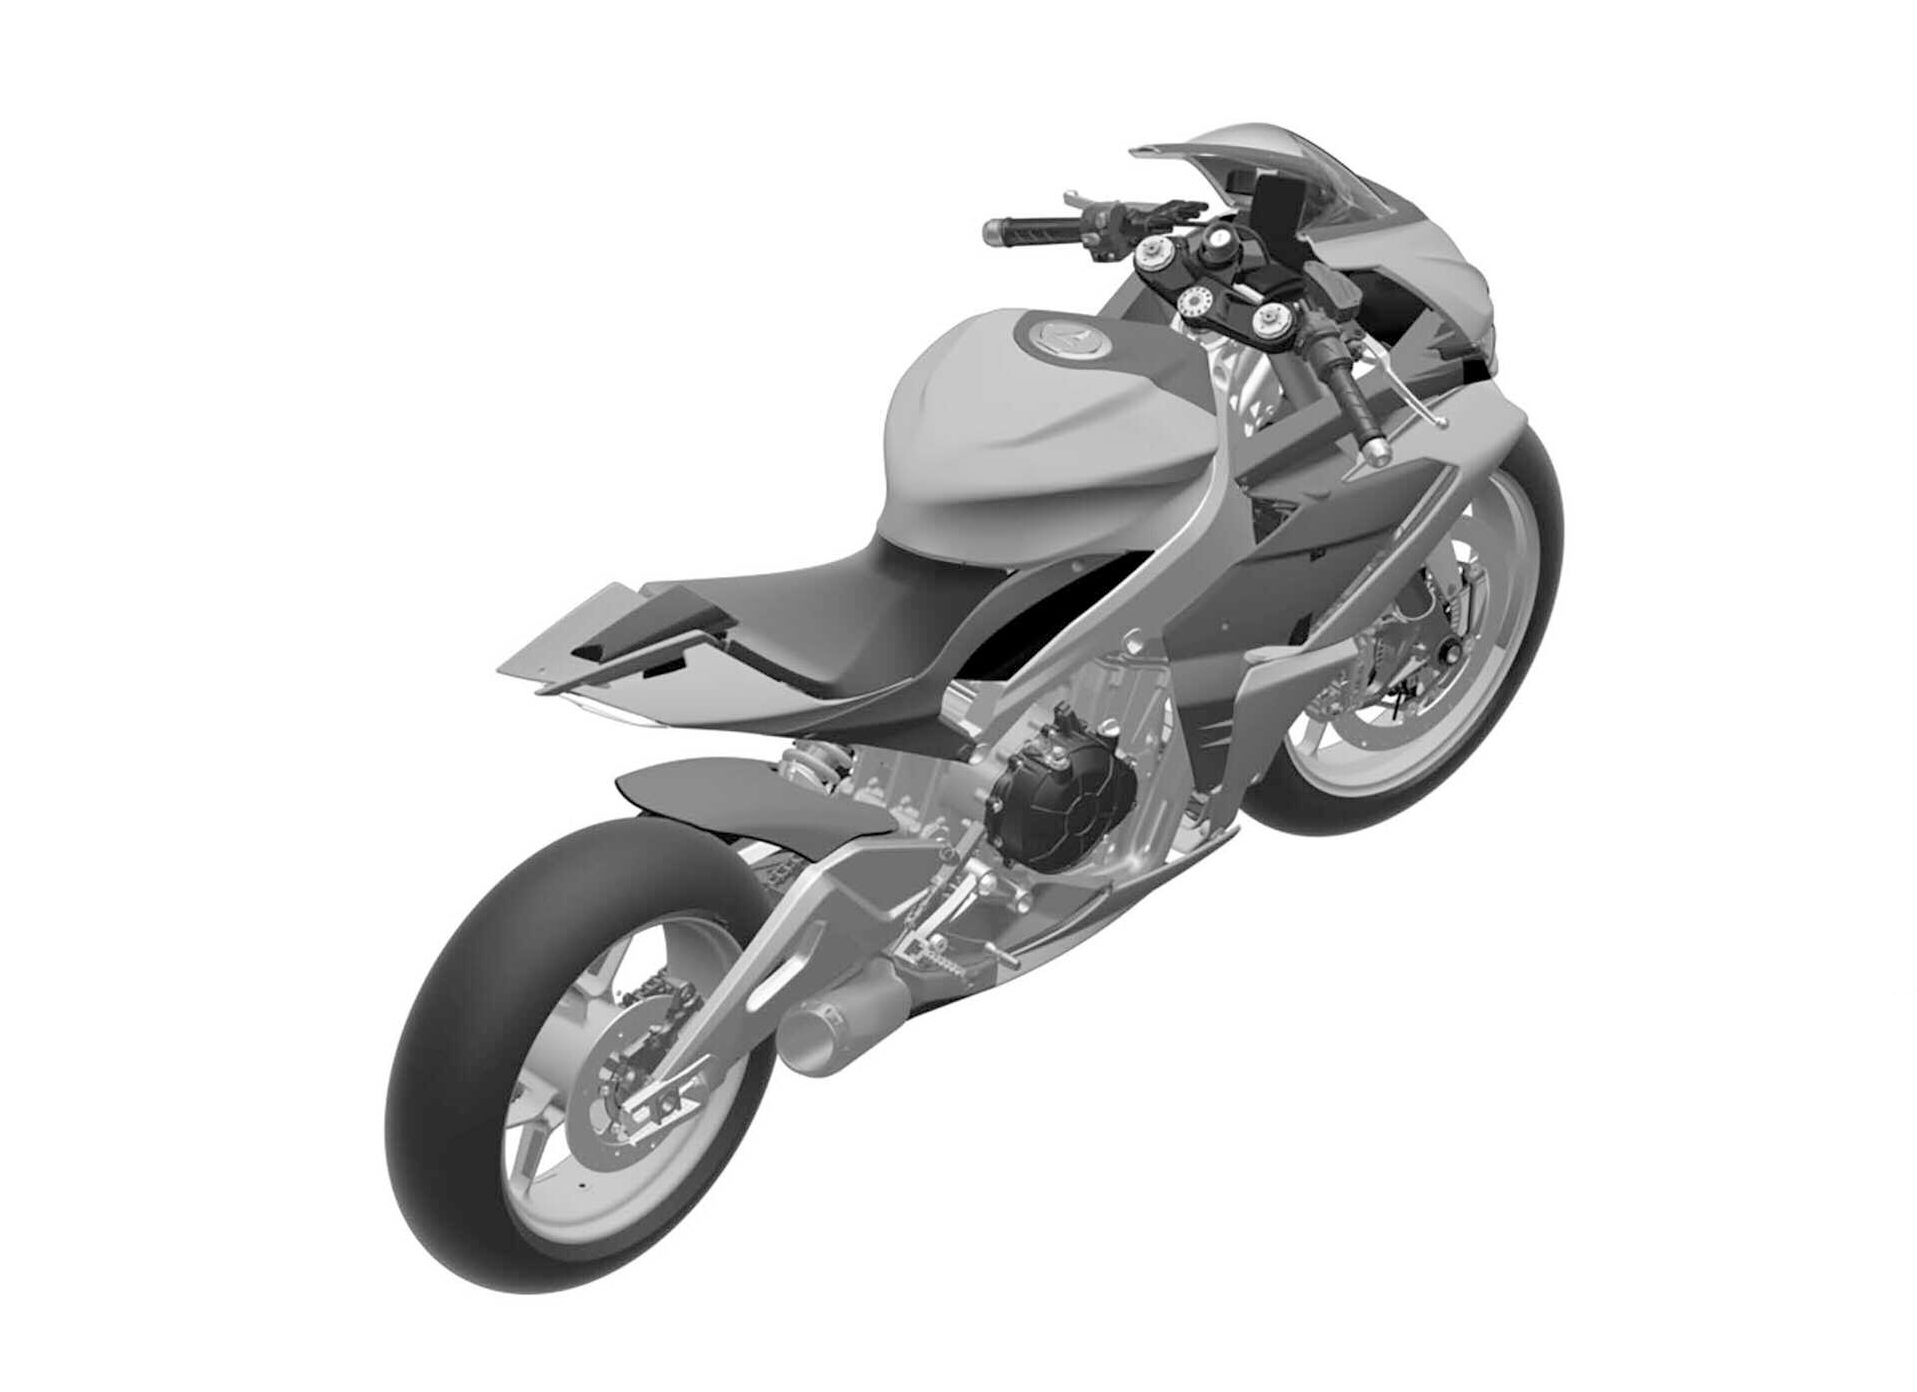 053019 2020 aprilia rs660 concept design right rear txt 5